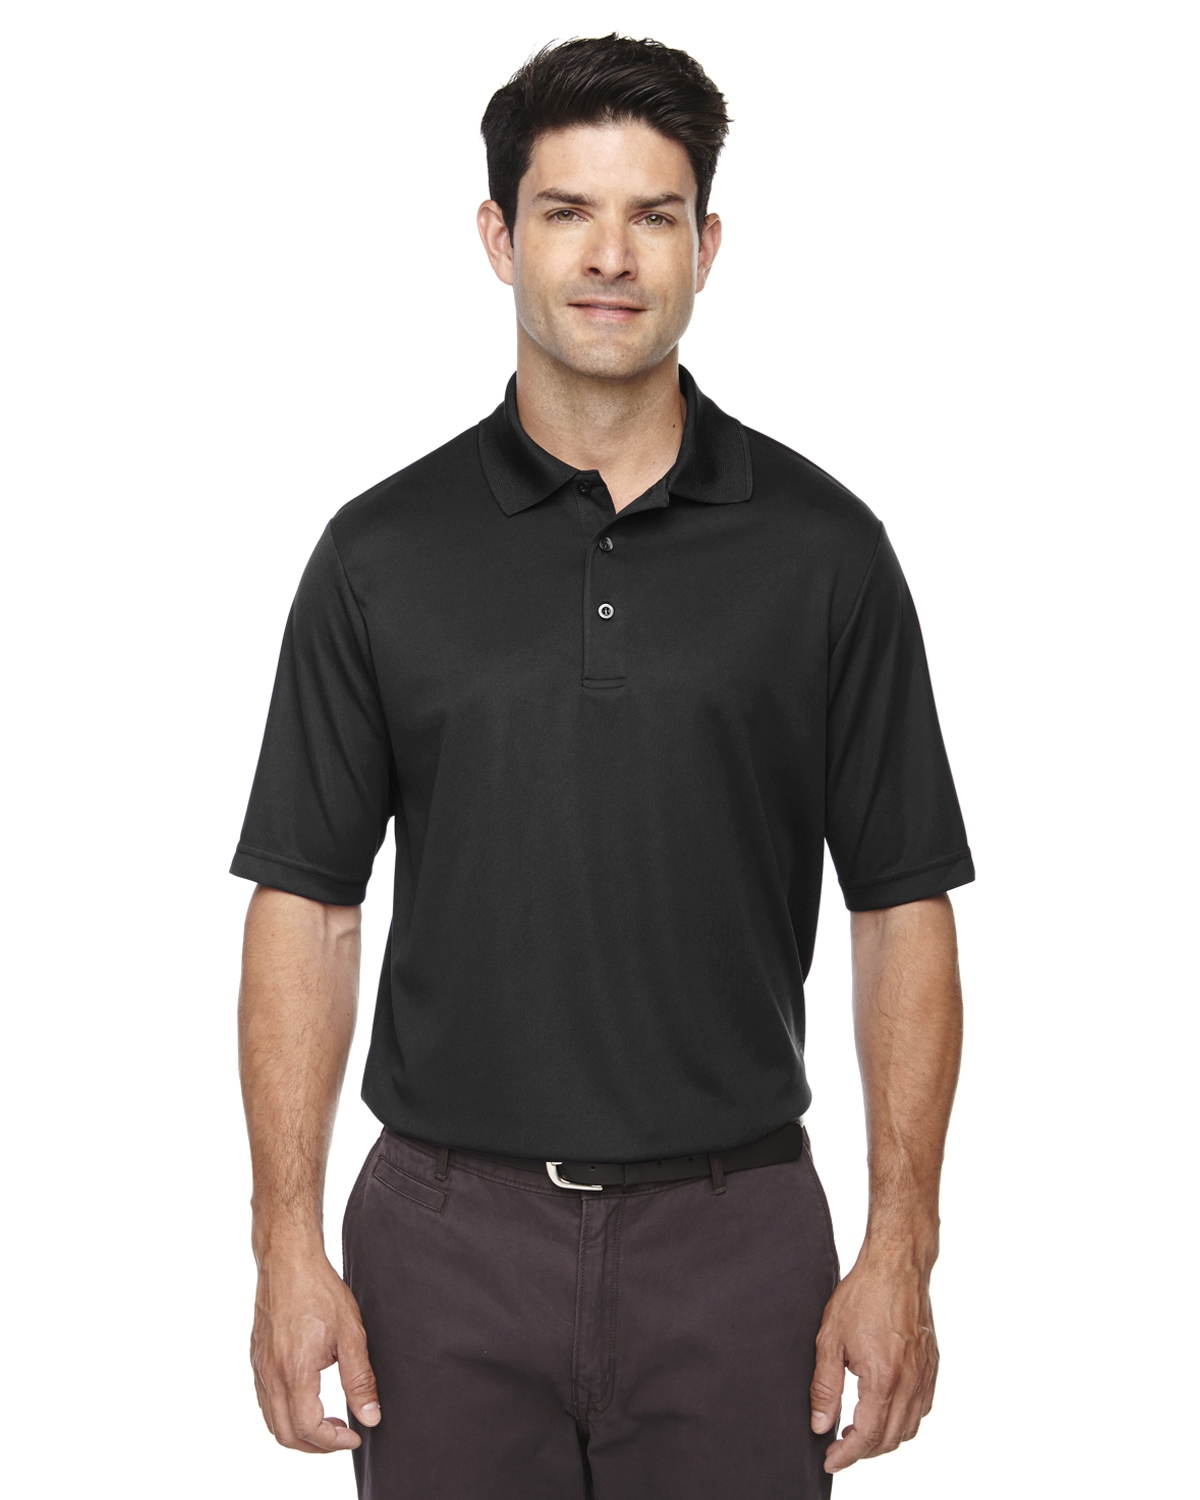 MHA88181T - SPG - Tall Sizes Core 365 Origin Performance Piqué Polo Performance Fabric, Moistrue wicking polo